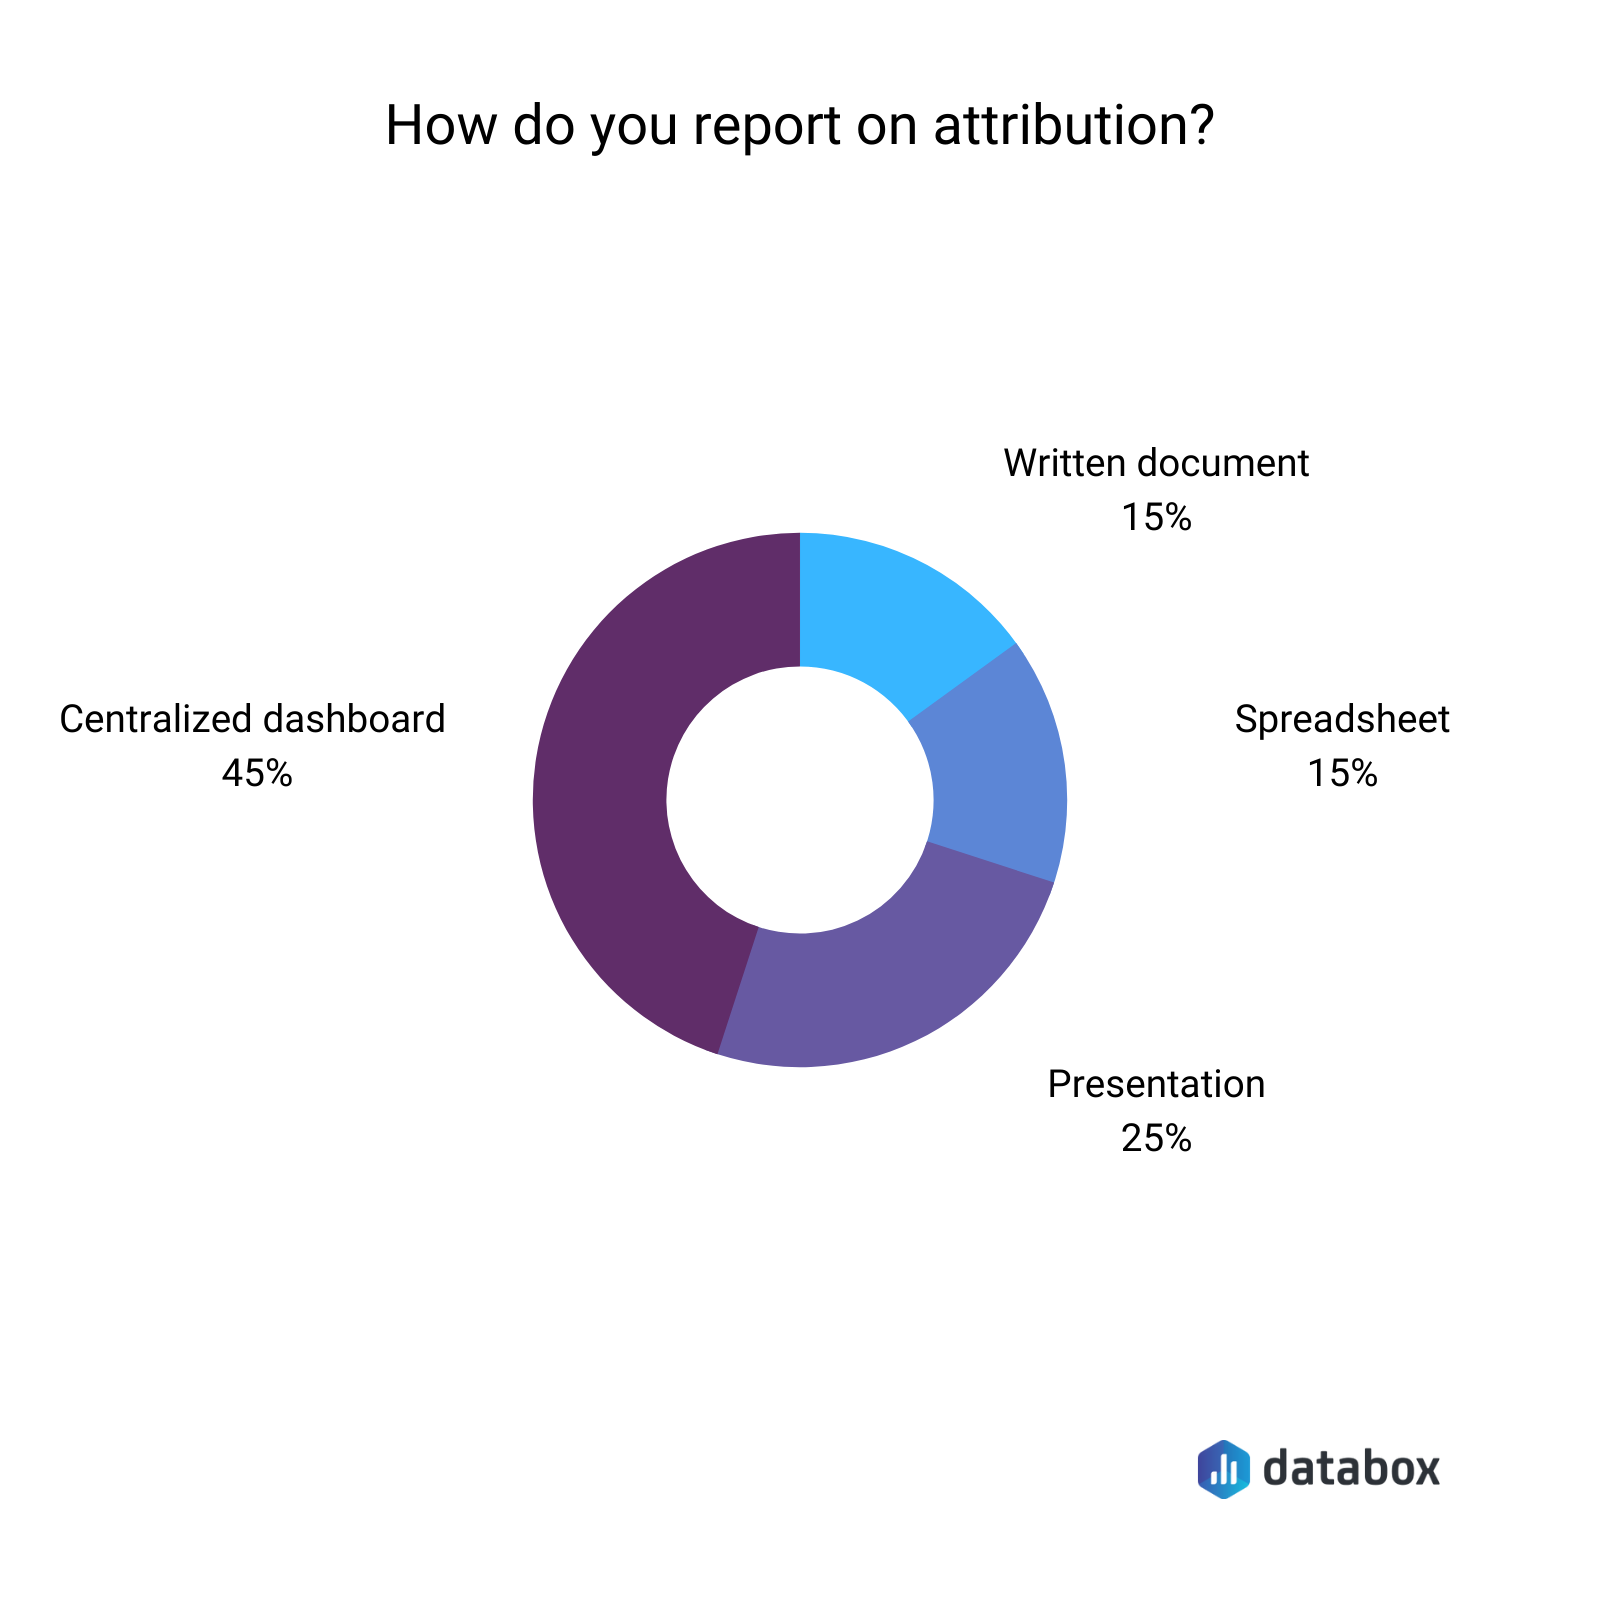 How do you report on attribution?